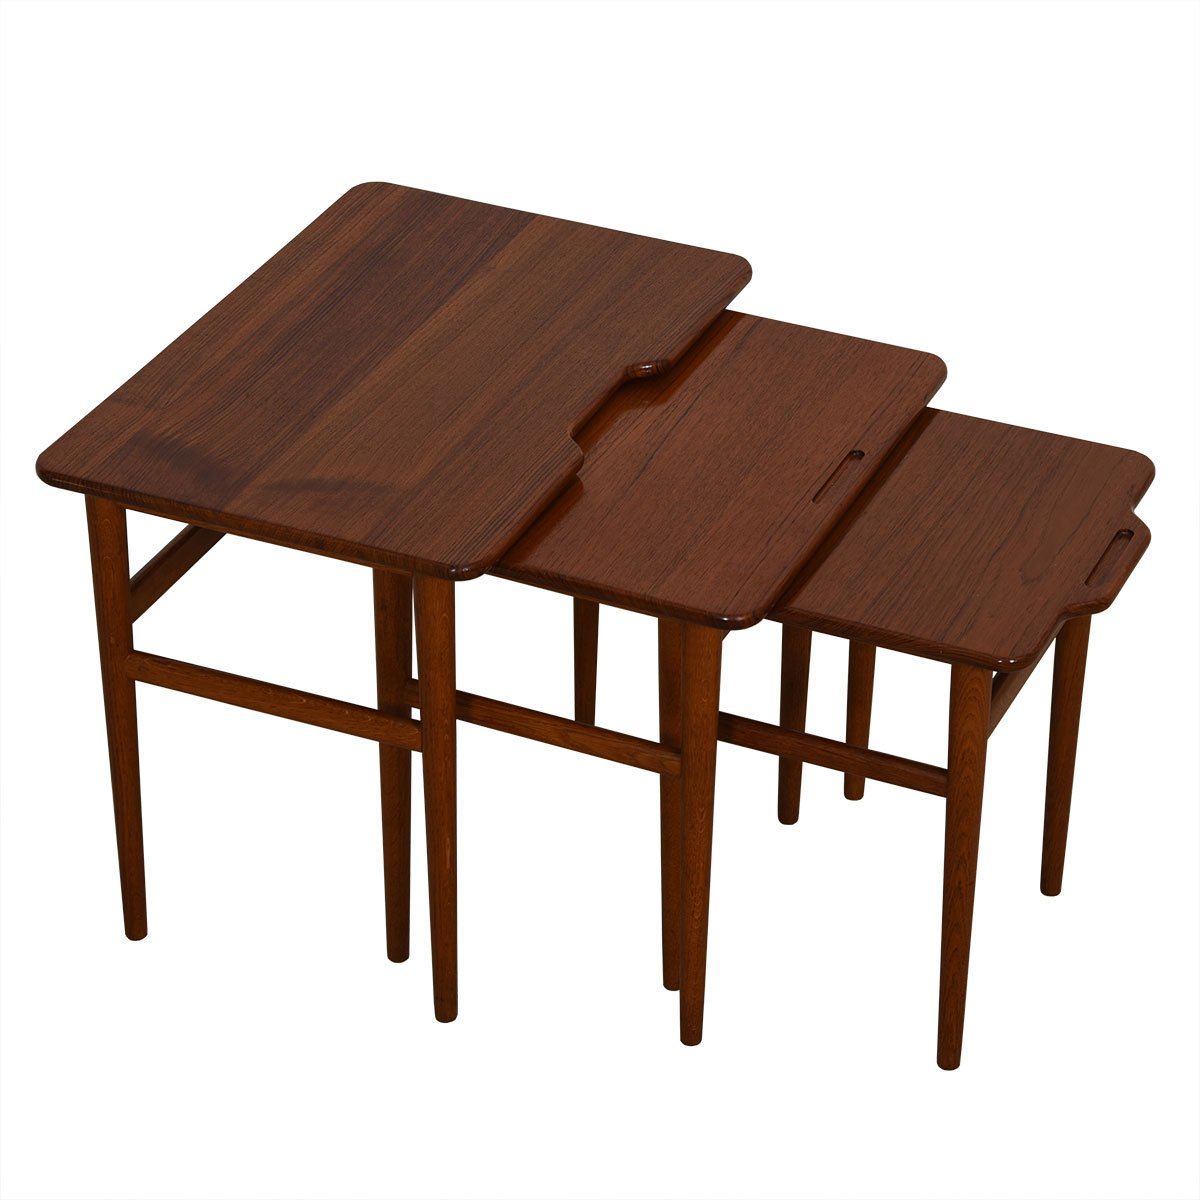 Danish Set of 3 Teak Nesting Tables with Channeled Handles